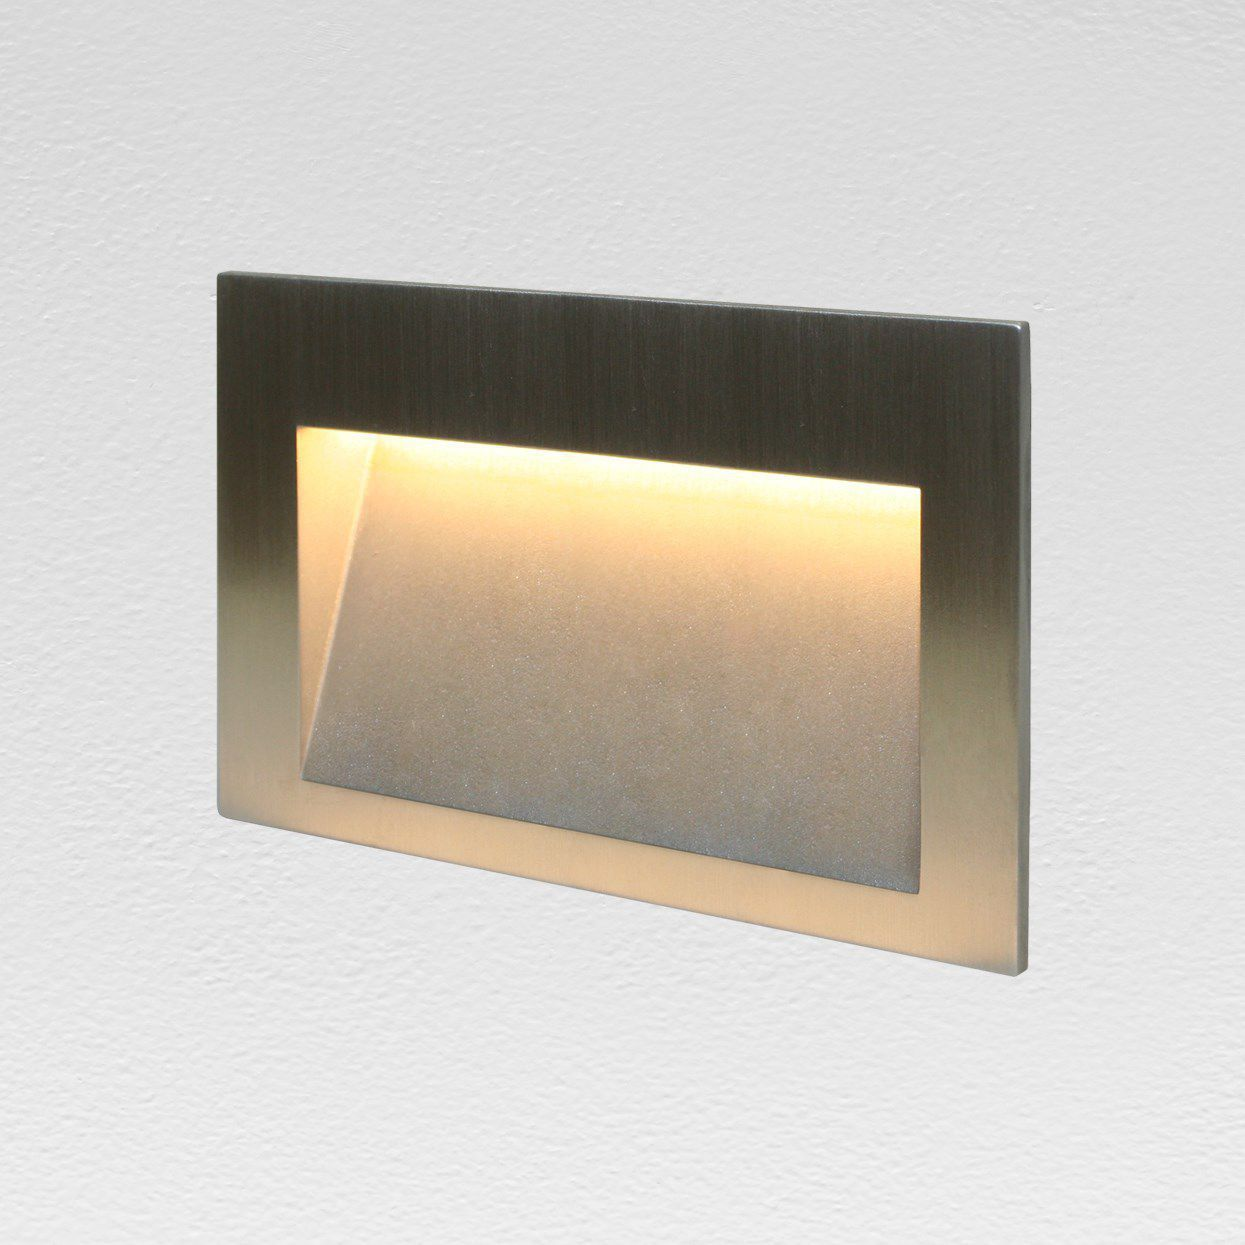 Recessed wall light fixture led square rectangular isl aled recessed wall light fixture led square rectangular isl aled lucifer led stair lightsrecessed mozeypictures Gallery